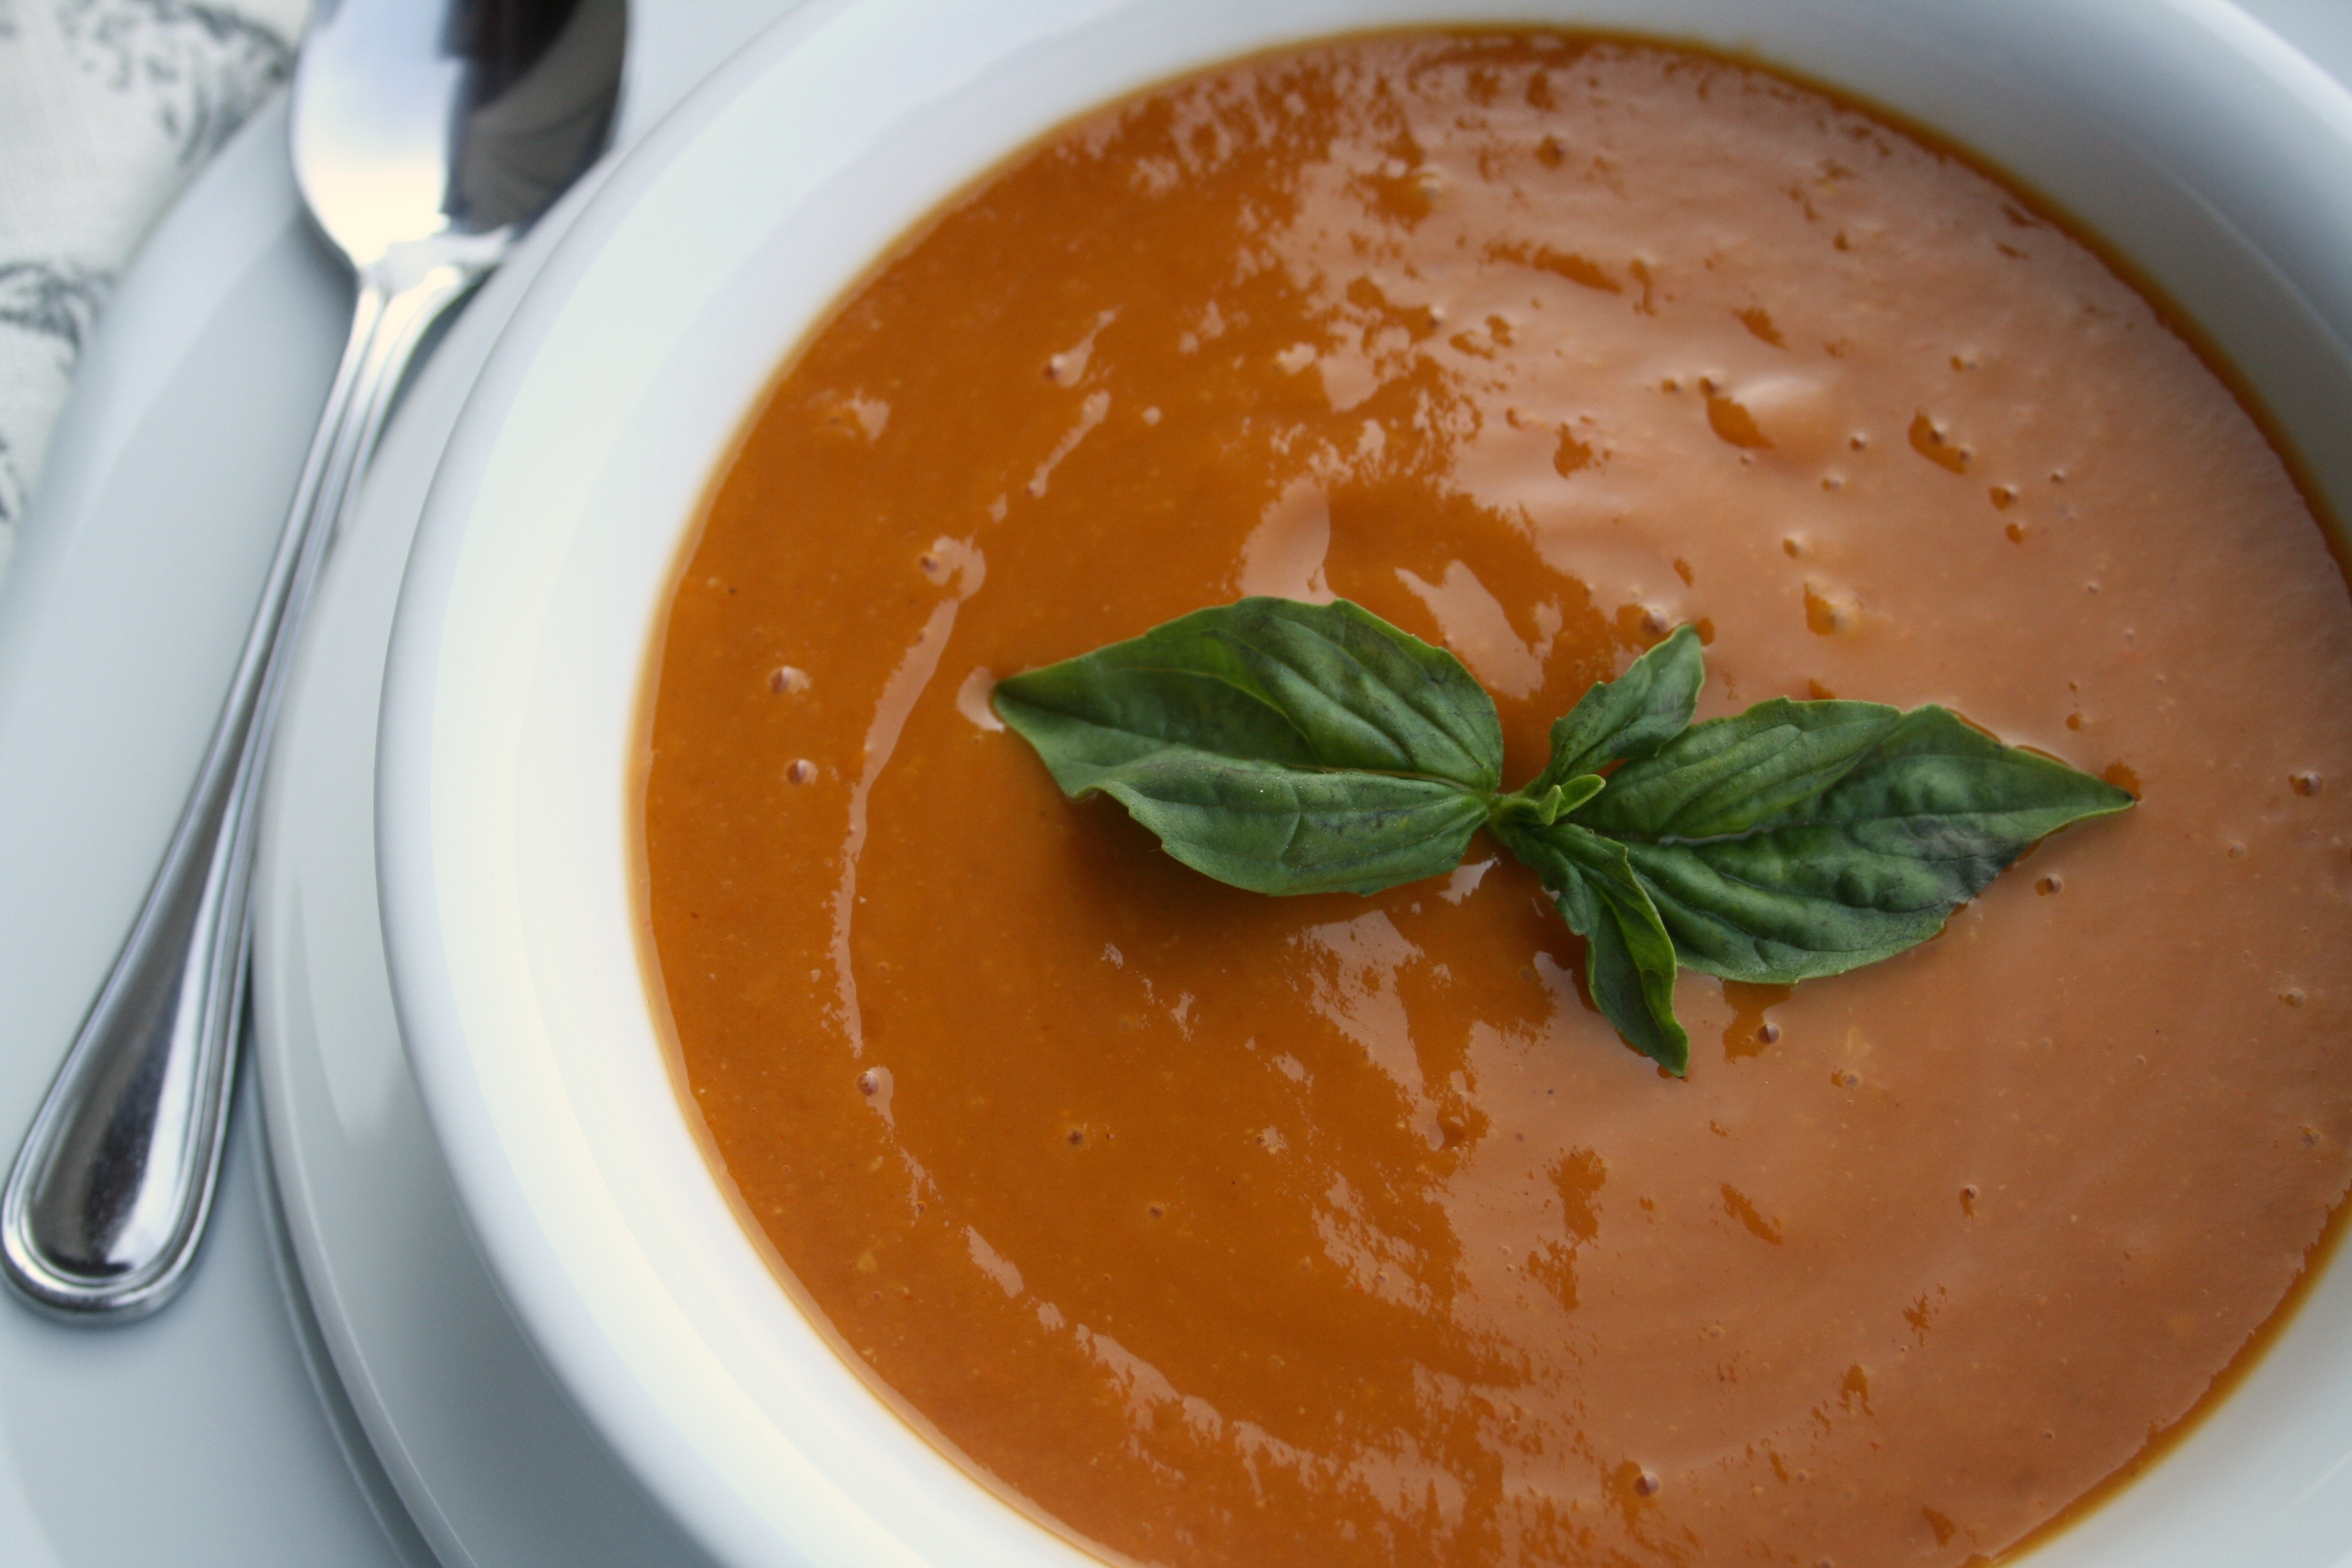 Tomato Chipotle Soup - Love from the Land